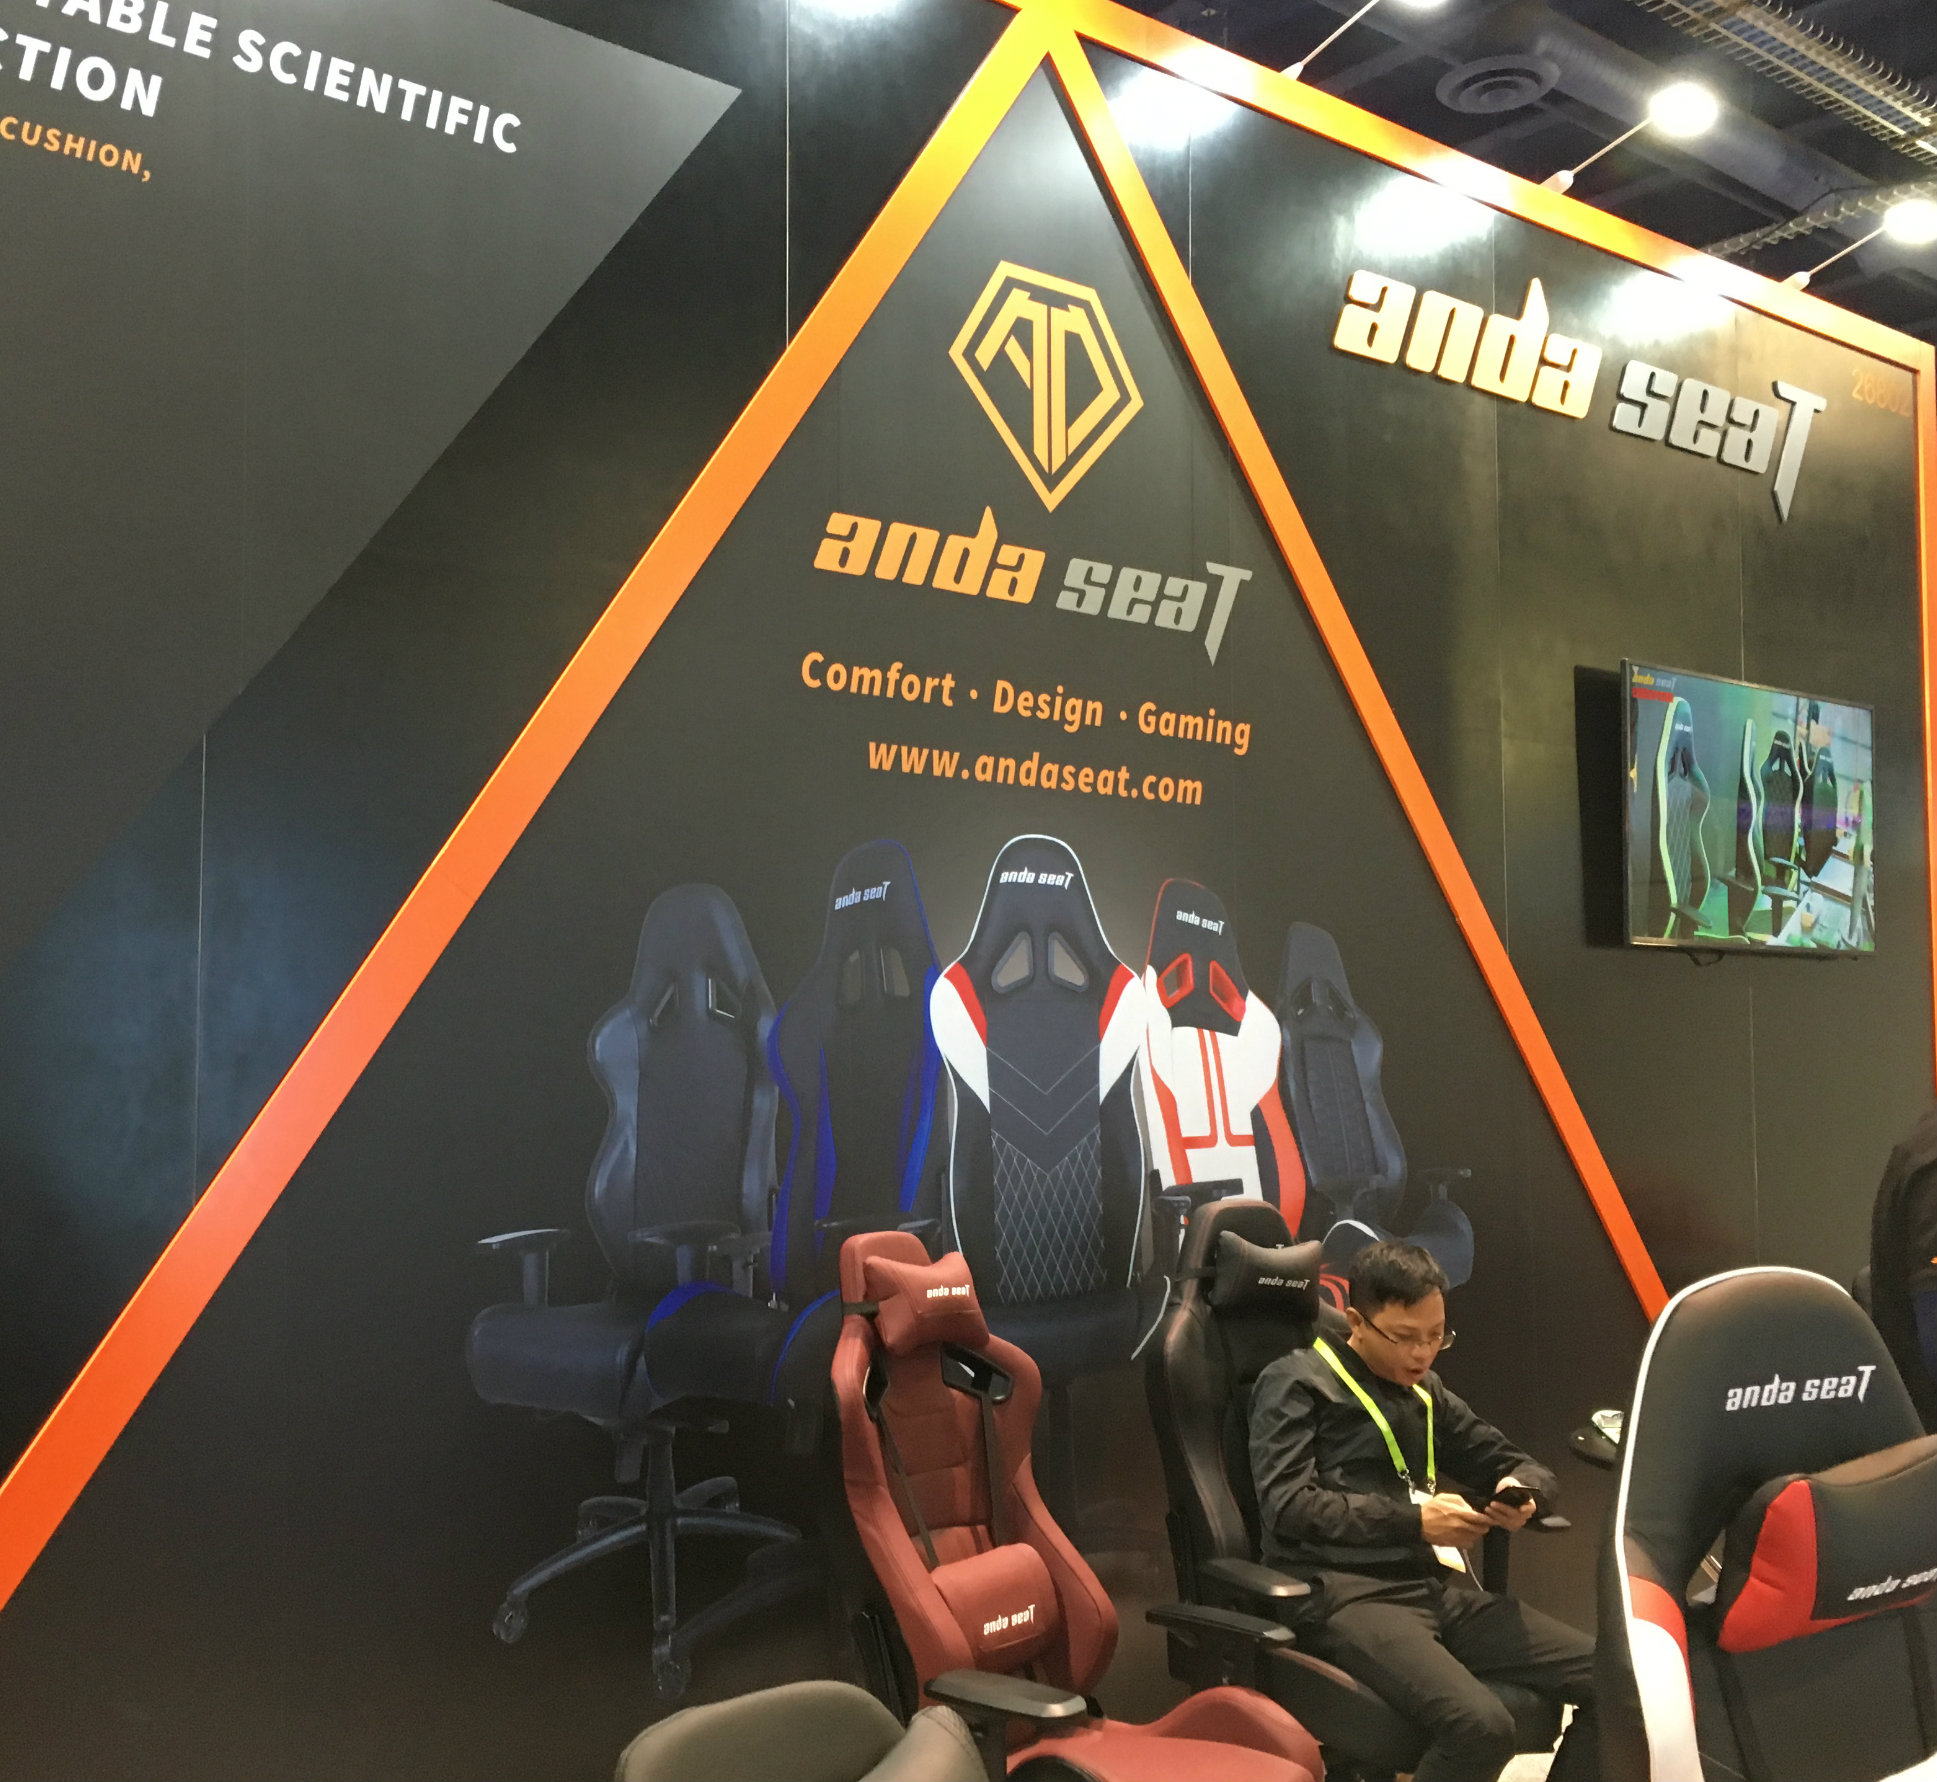 Remarkable Top Gaming Accessories At Ces 2018 Echogear Short Links Chair Design For Home Short Linksinfo